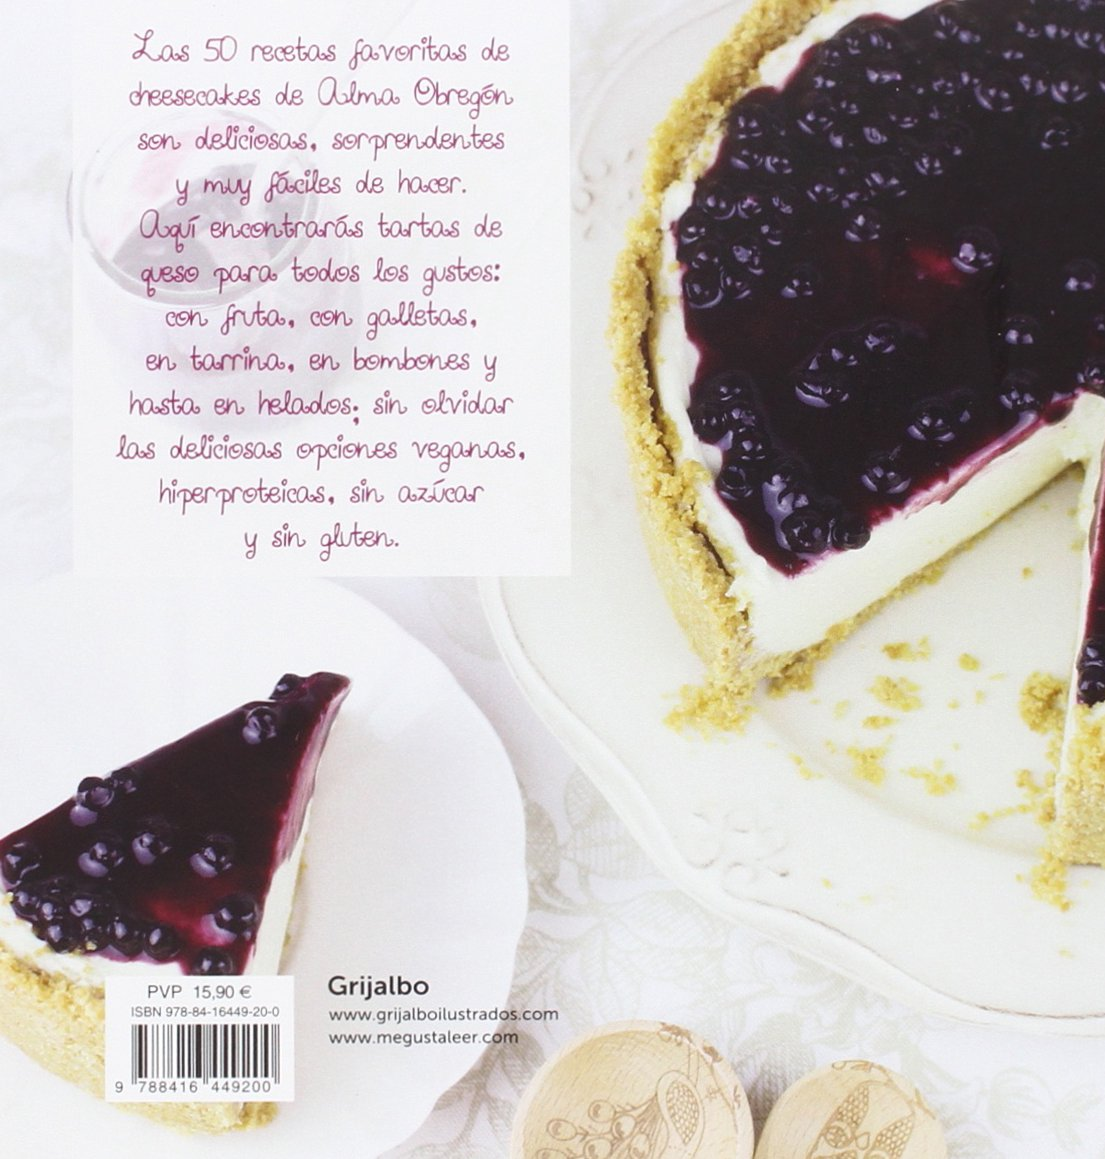 Objetivo: Cheesecake perfecto/Objective: Perfect Cheesecake (Spanish Edition): Alma Obregon: 9788416449200: Amazon.com: Books